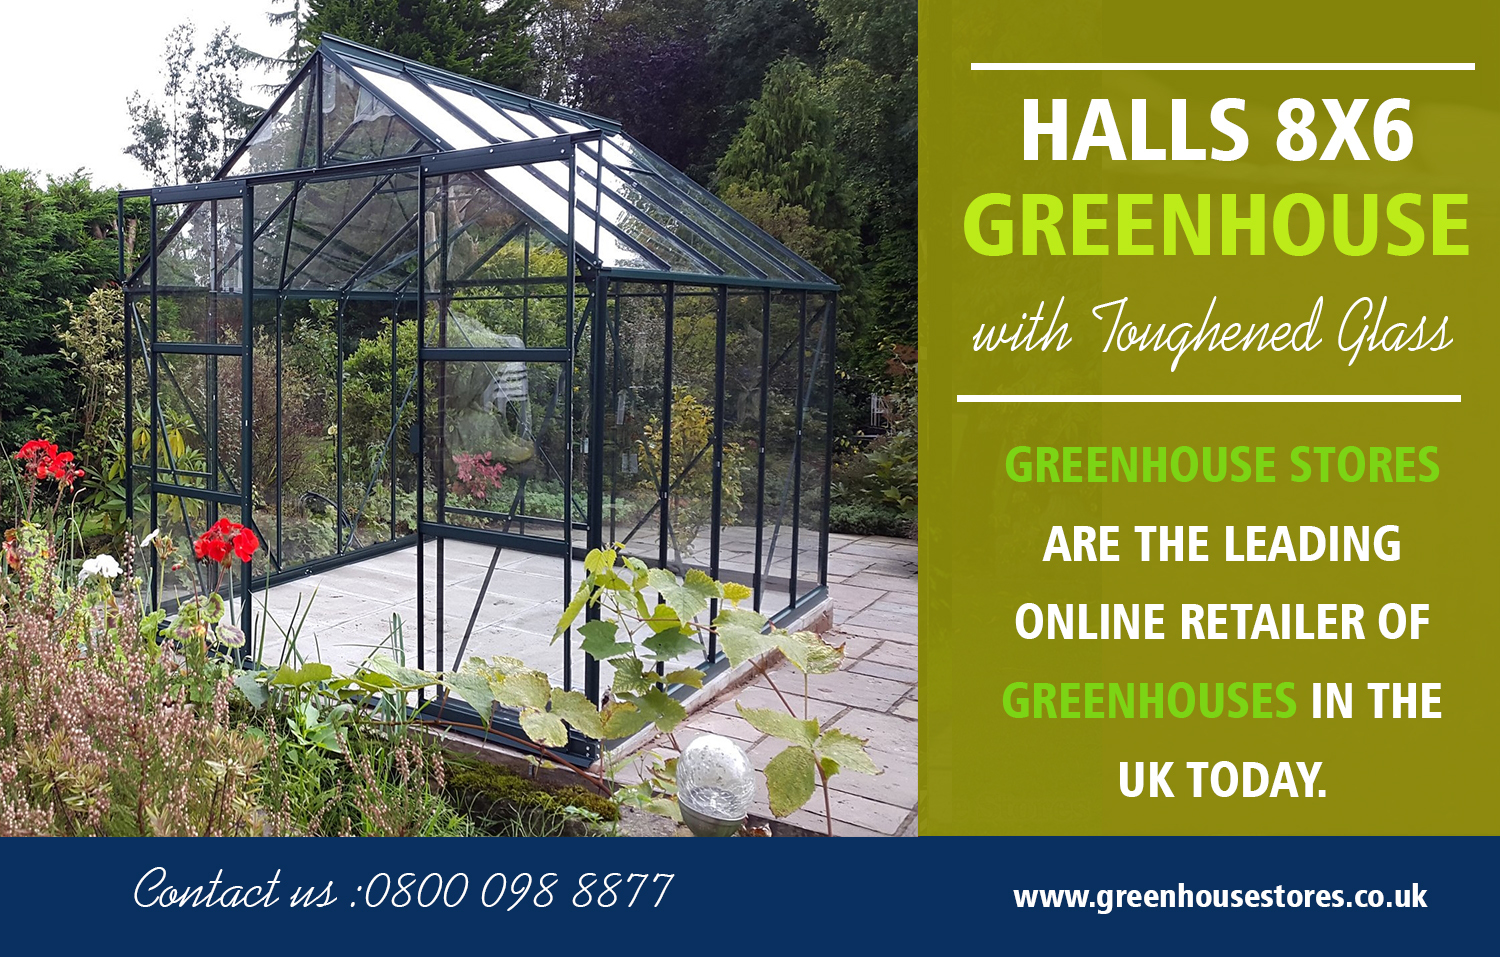 Halls 8x6 Greenhouse with Toughened Glass | 800 098 8877 | greenhousestores.co.uk